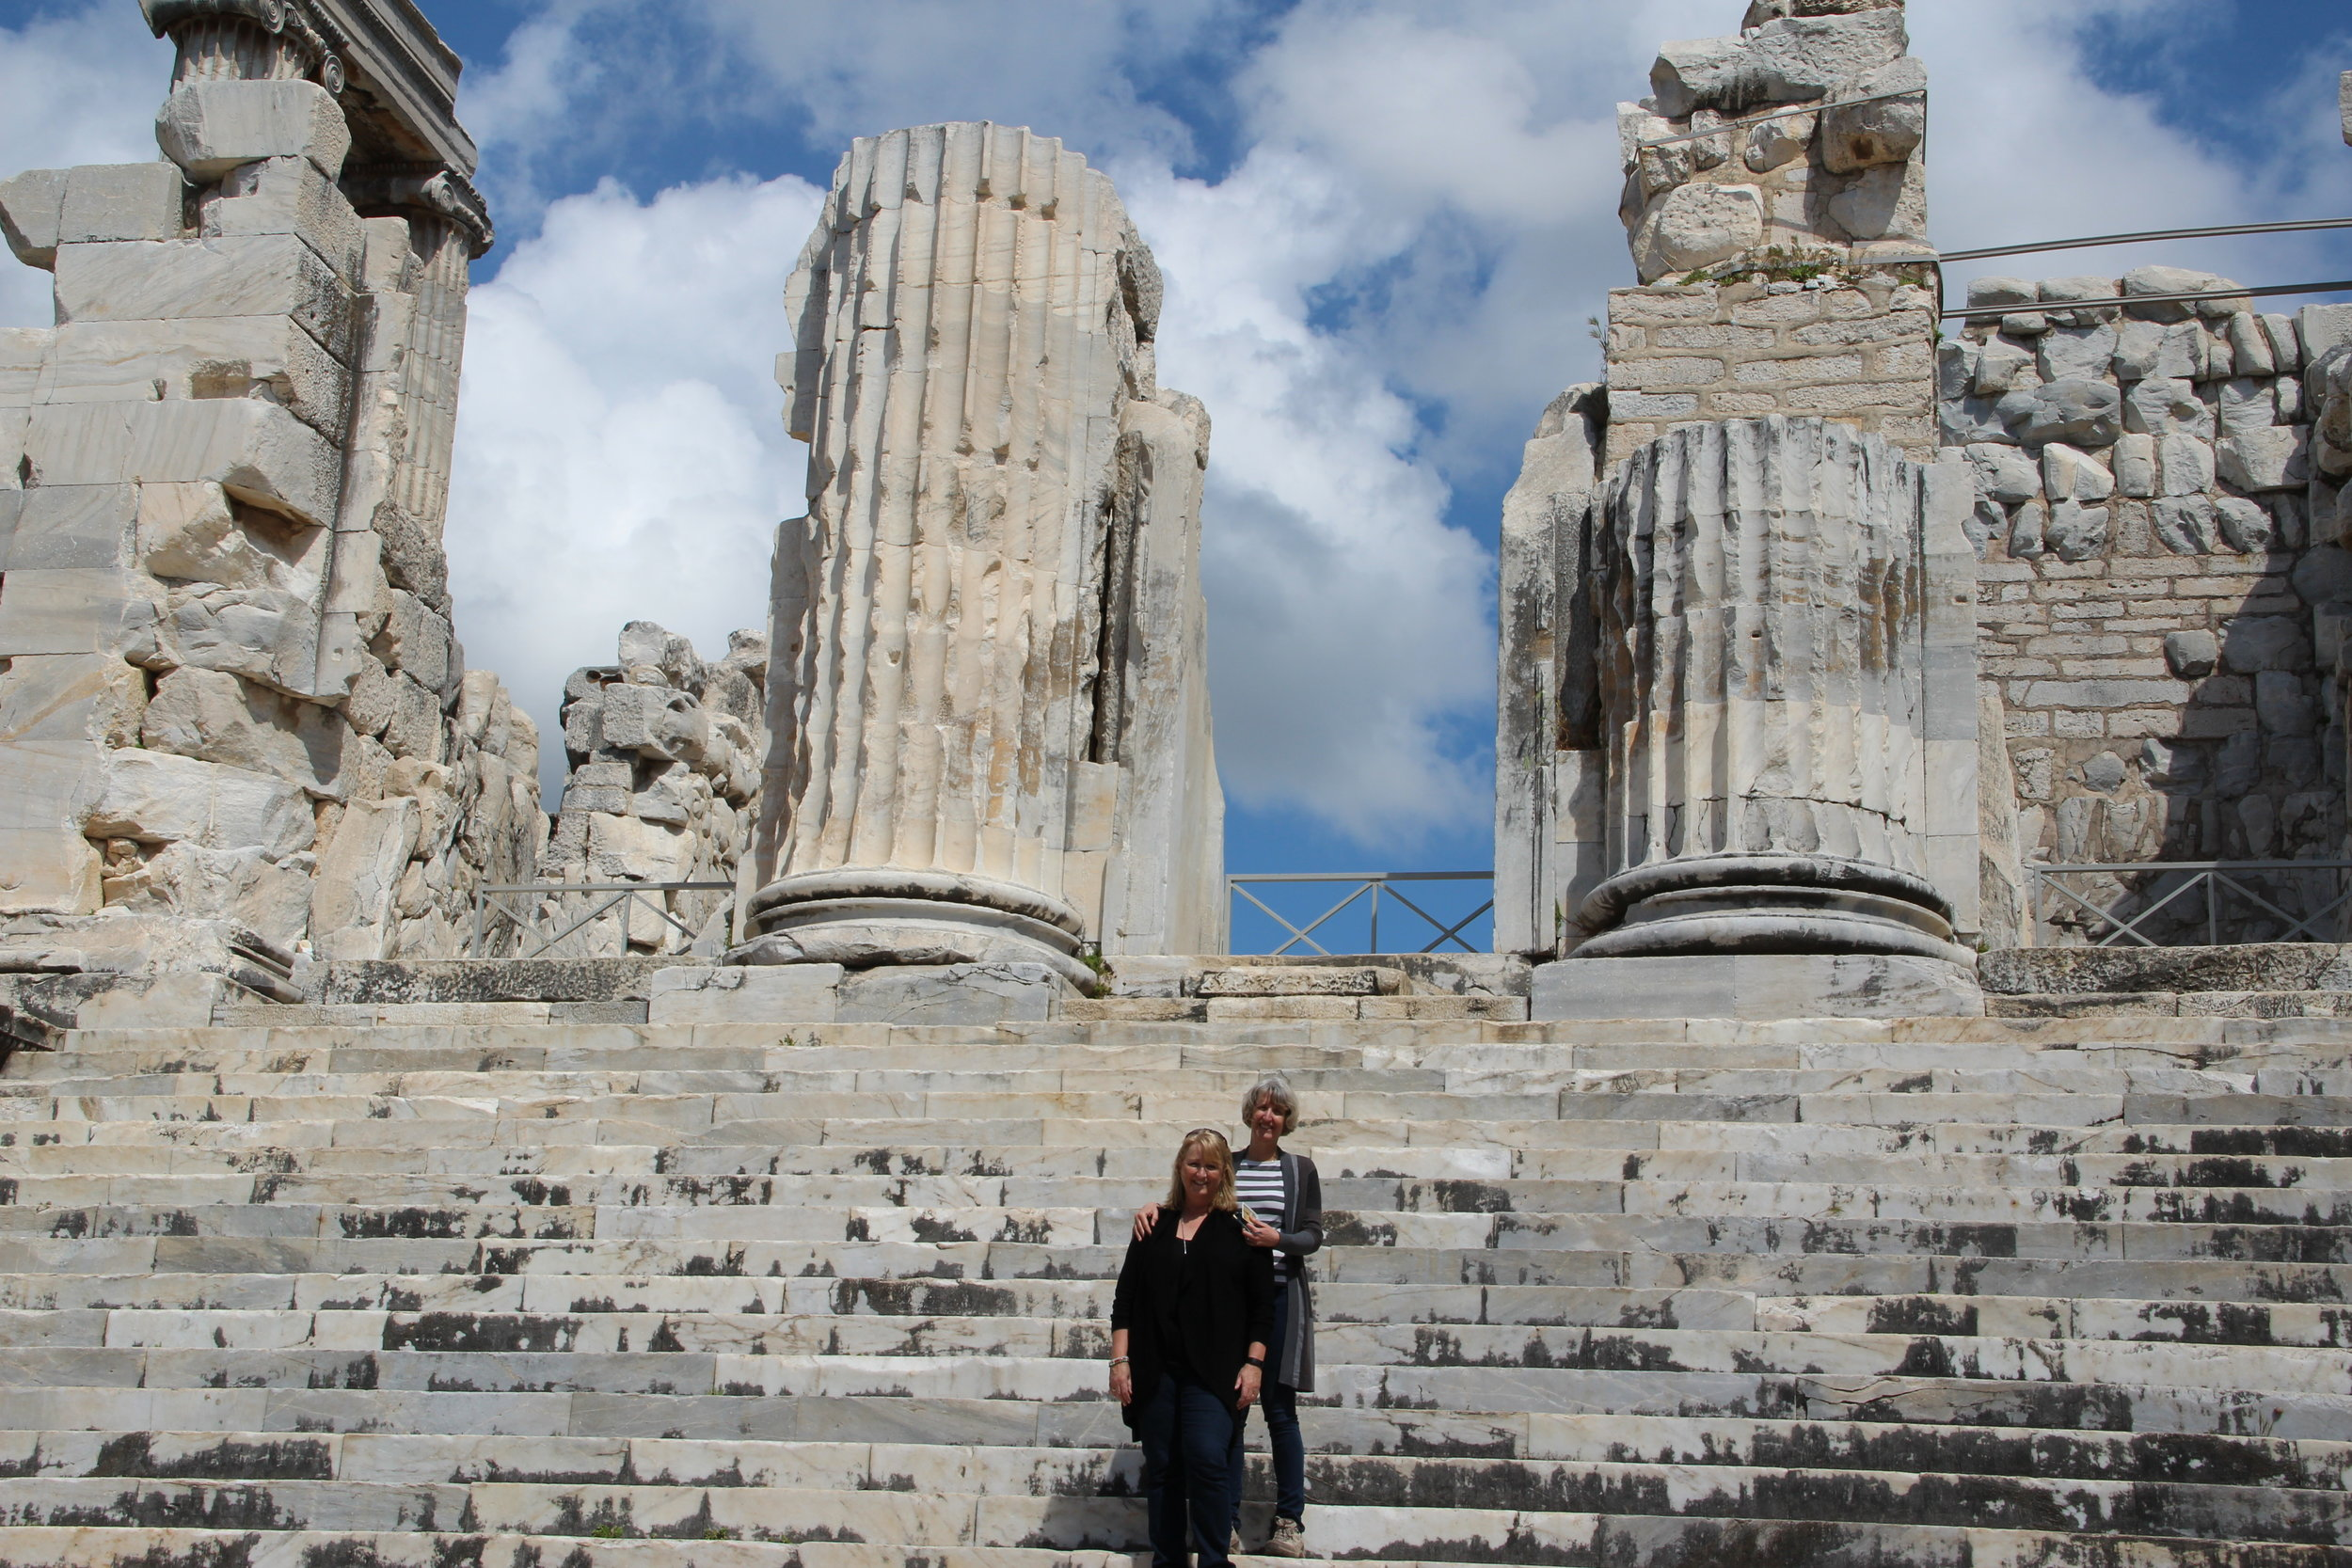 One of the Seven Wonders of the World, the 6th century BC temple of Apollo at Didyma near Miletus. Hard to realize the scale in a photo.